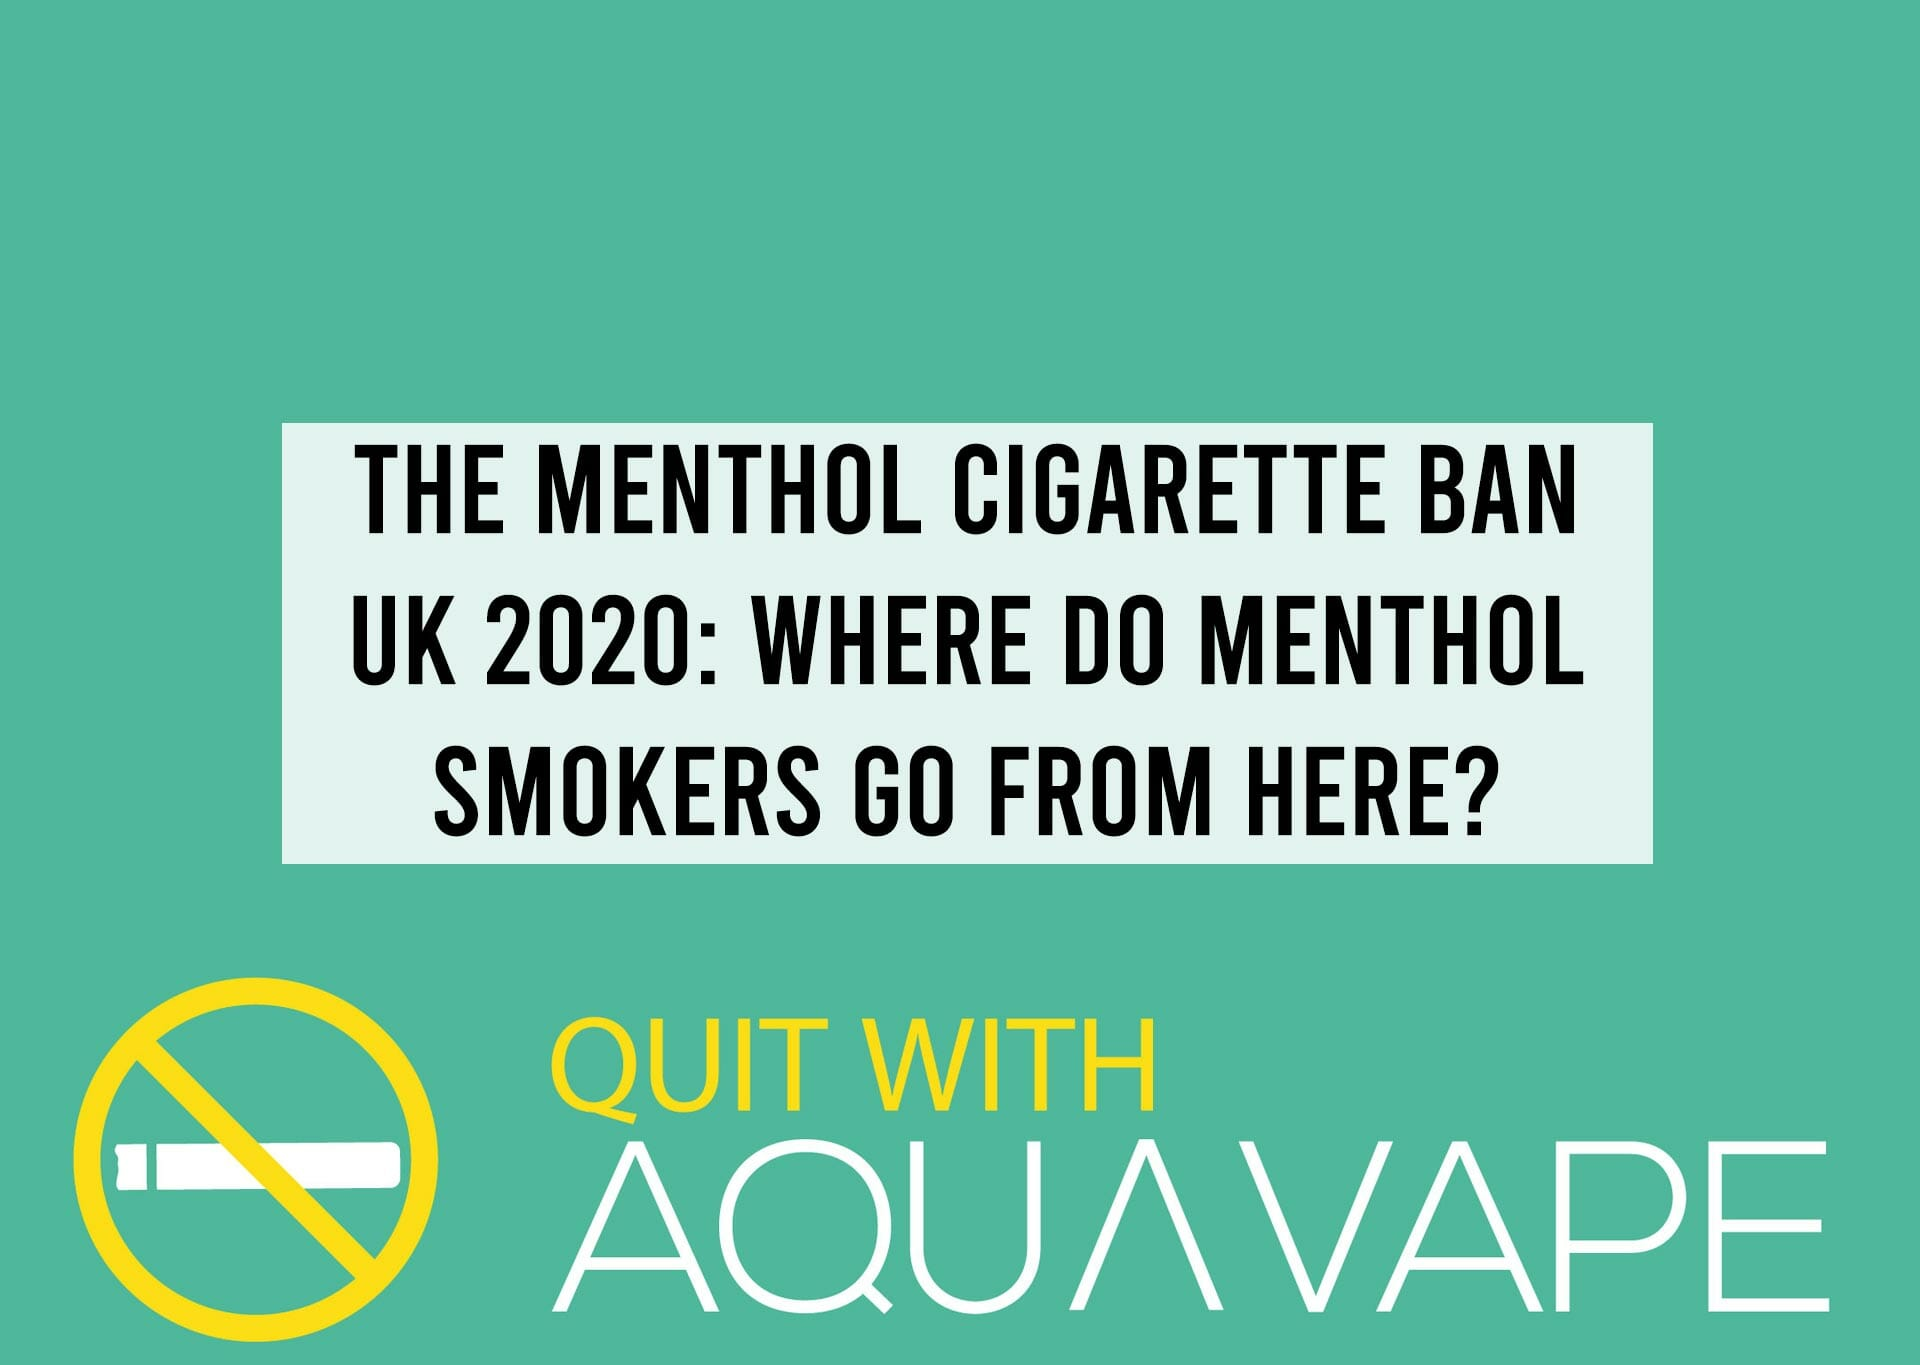 The-Menthol-Cigarette-Ban-UK-2020--Where-Do-Menthol-Smokers-Go-From-Here-